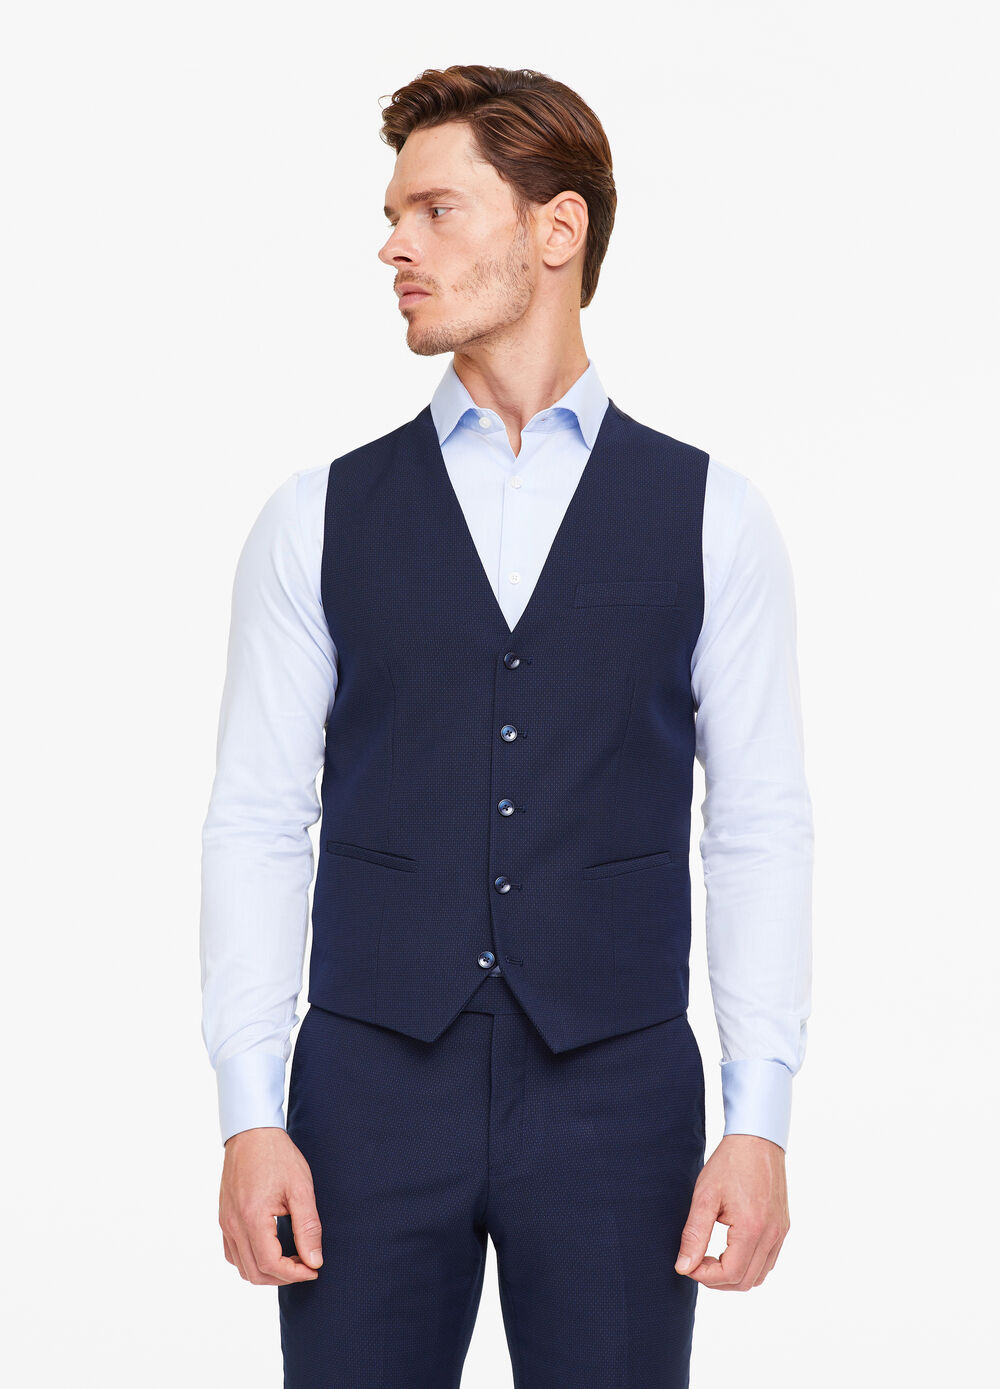 Custom-fit waistcoat with speckled weave